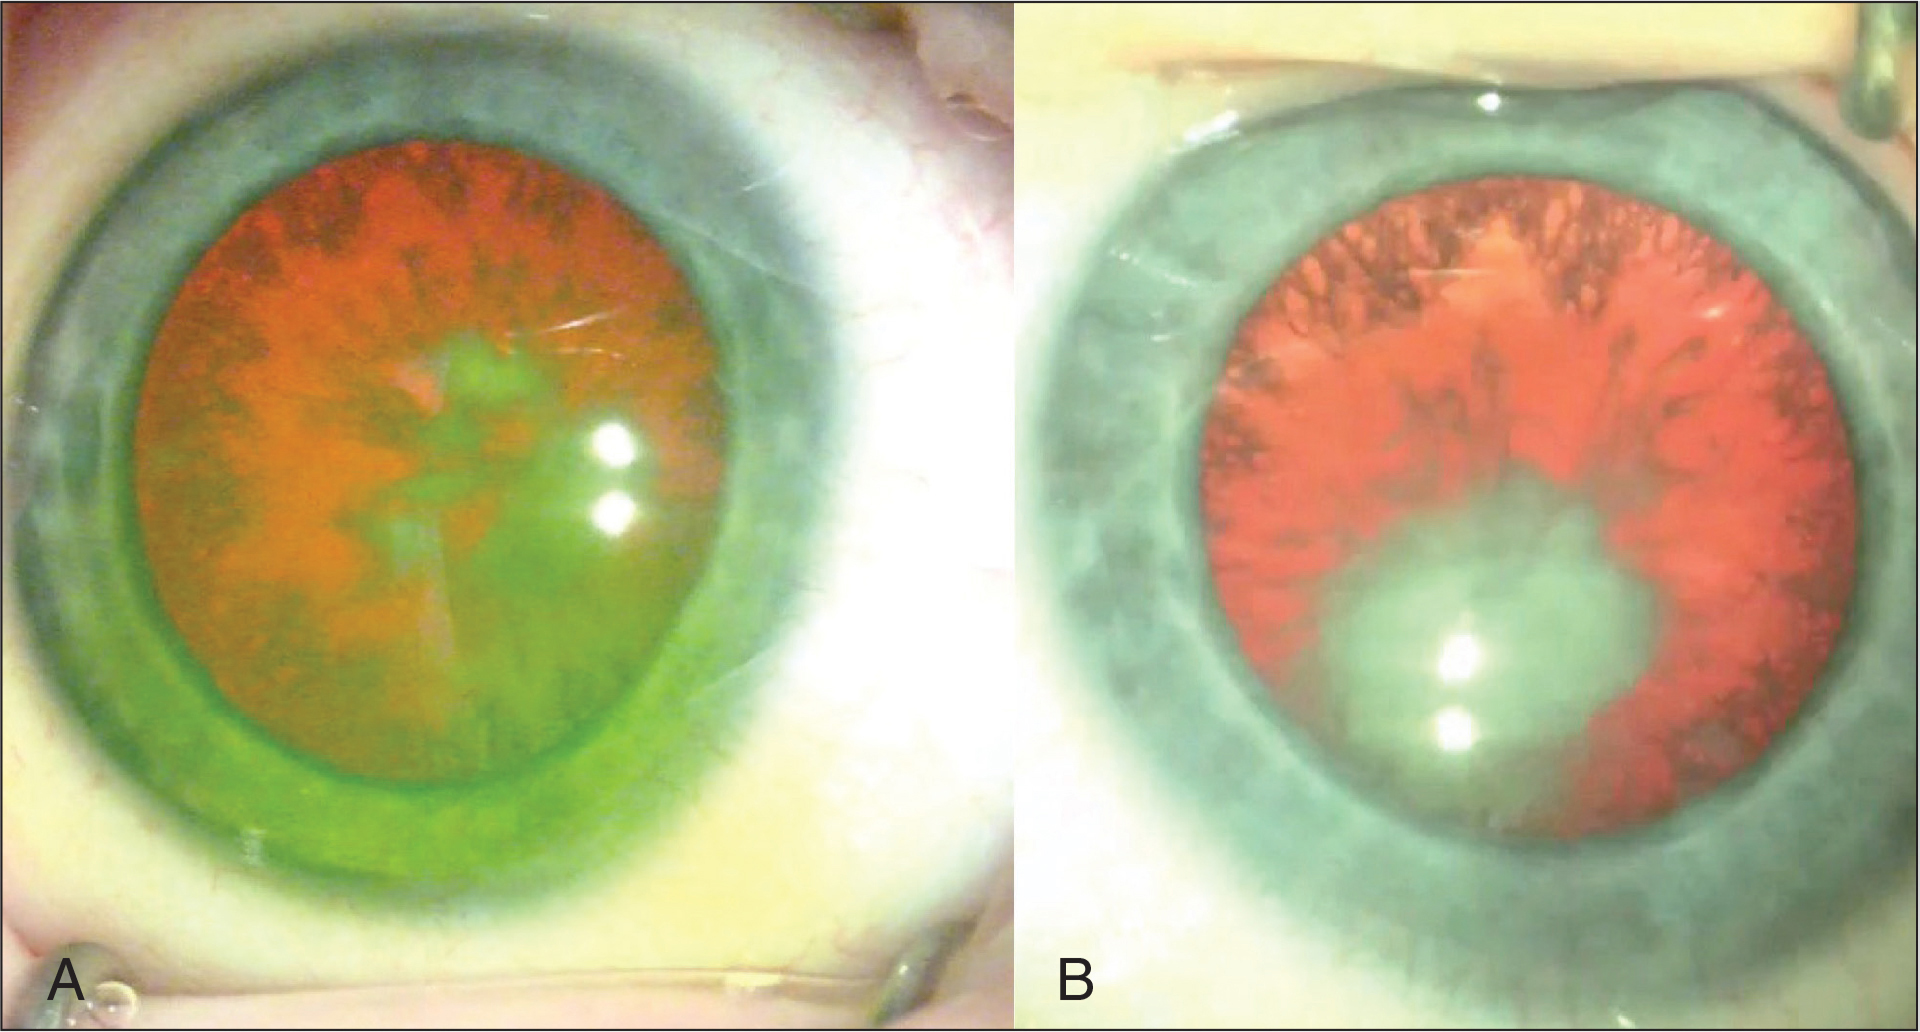 Intraoperative photograph of the (A) right and (B) left eye highlighting diffuse cortical changes. A more dense posterior opacity is noted inferonasally in each eye, obscuring the view of the fundus.